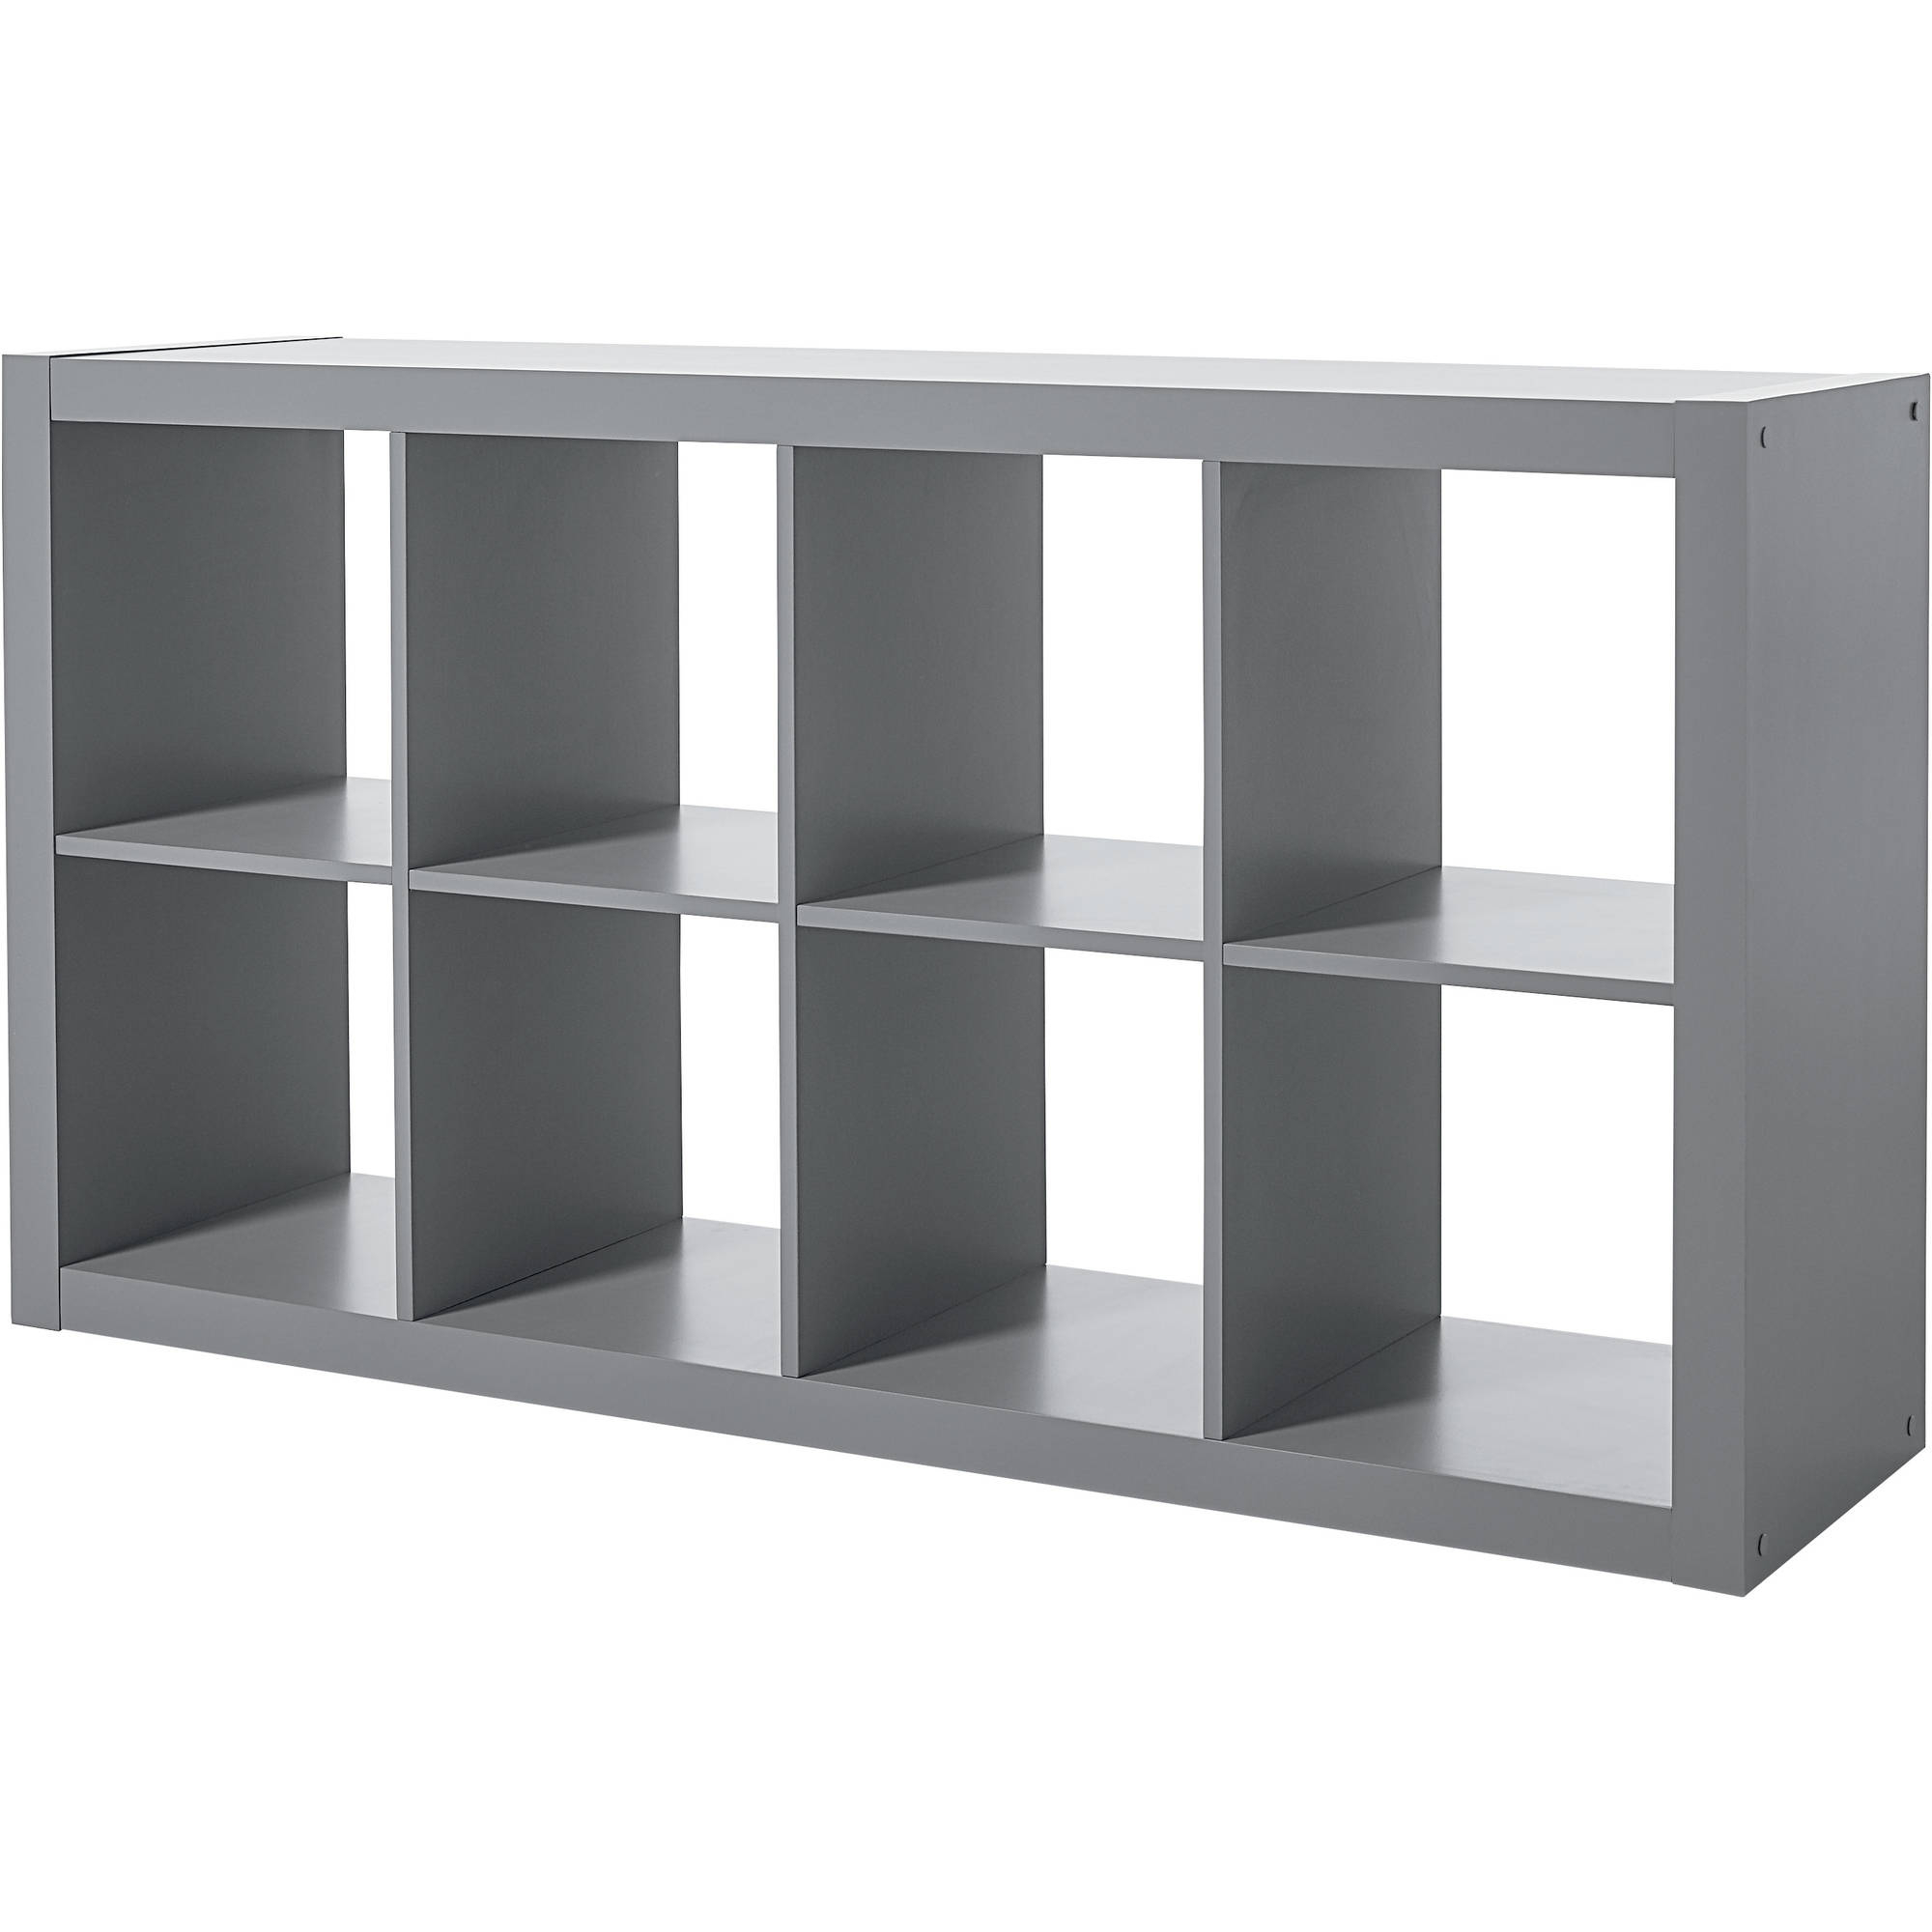 Better Homes And Gardens 8 Cube Organizer, Multiple Colors For Mainstays 4 Cube Tv Stands In Multiple Finishes (View 10 of 20)